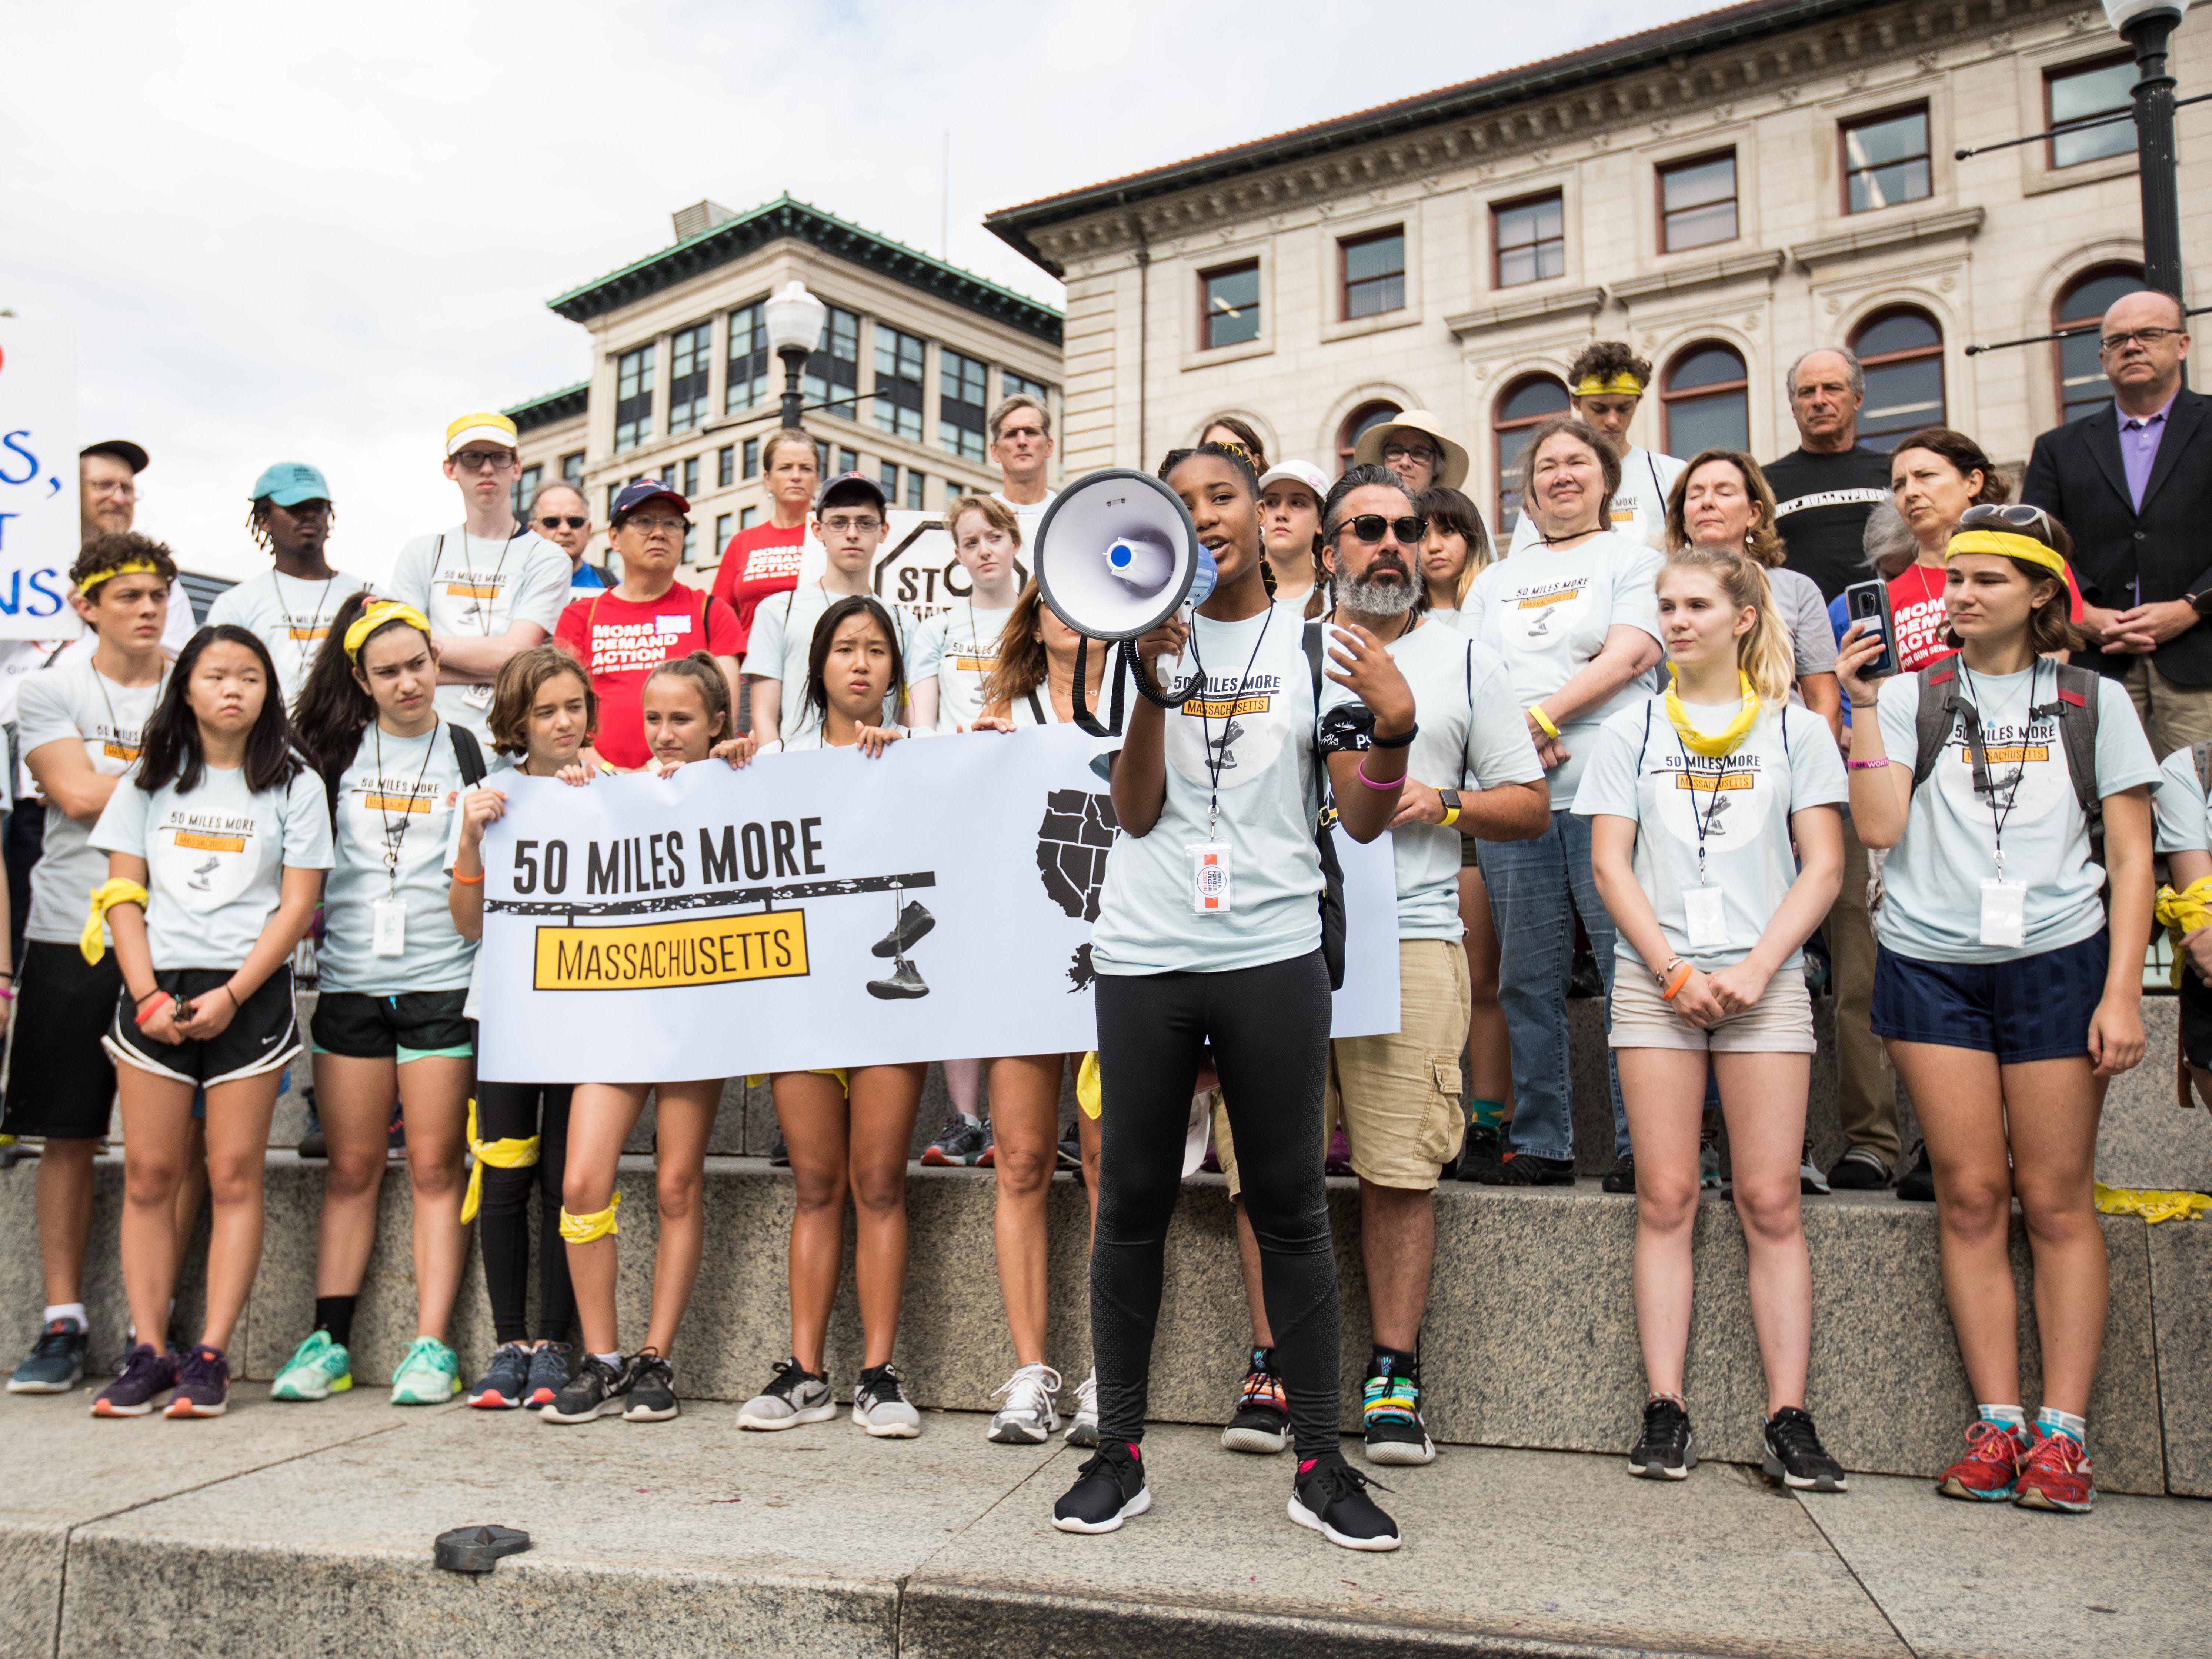 Activists take part in the 50 Miles More walk against gun violence gather at Worcester City Hall on Aug. 23, 2018 in Worcester, Mass.